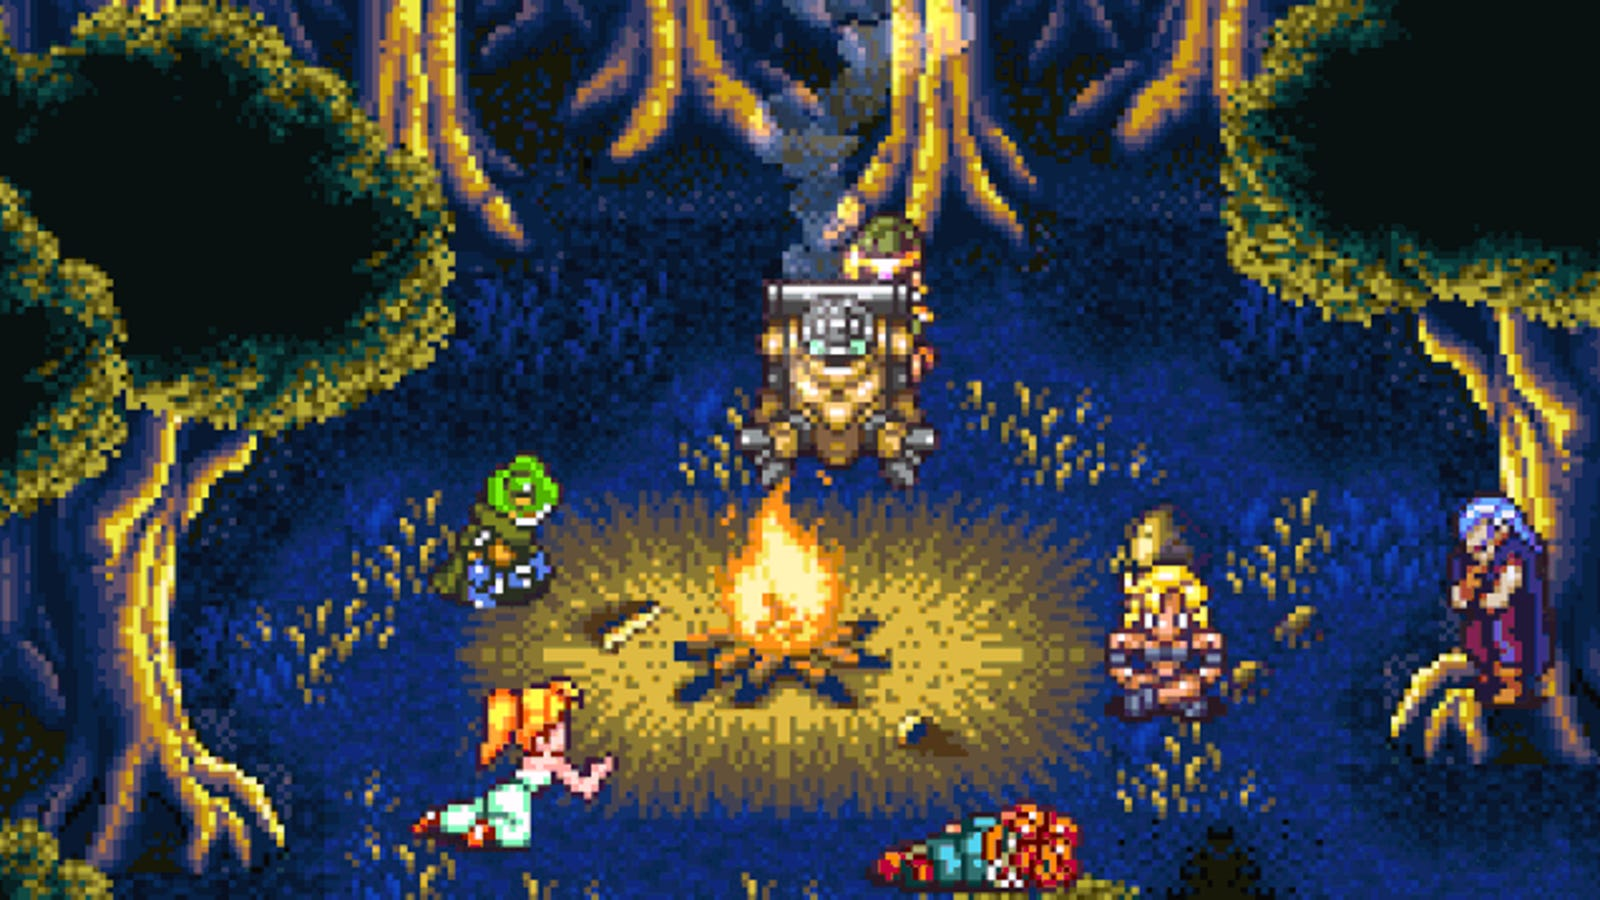 The Amazing Music of Chrono Trigger